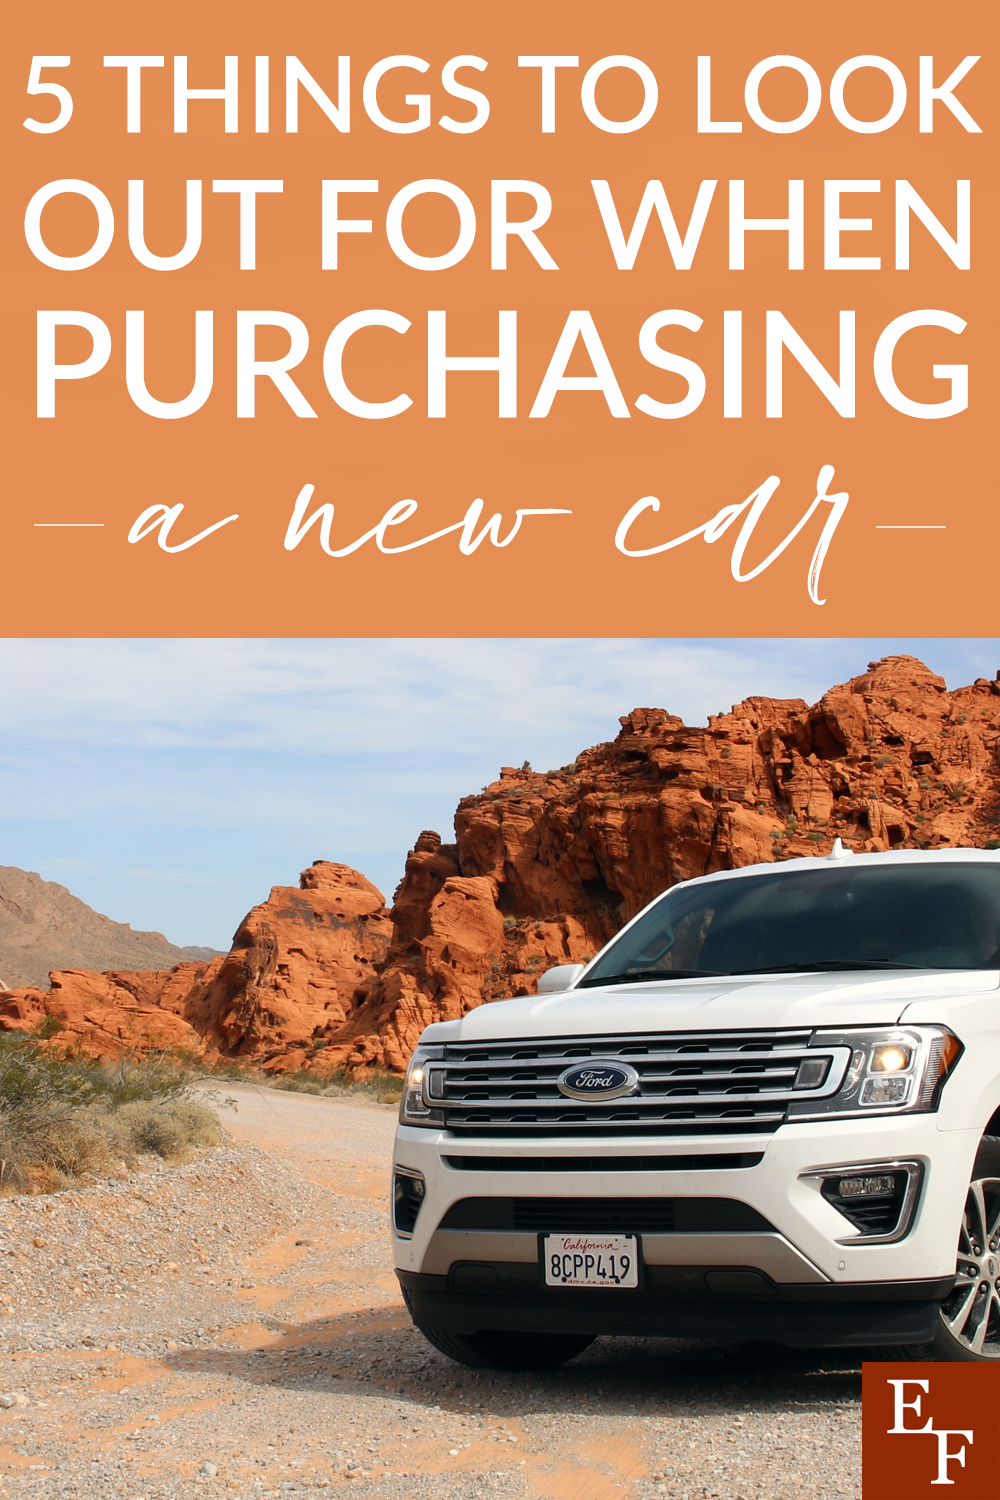 When you're new car shopping, there are a lot of things to think about. Here are 5 things to look out for when purchasing a new car to help save you money.